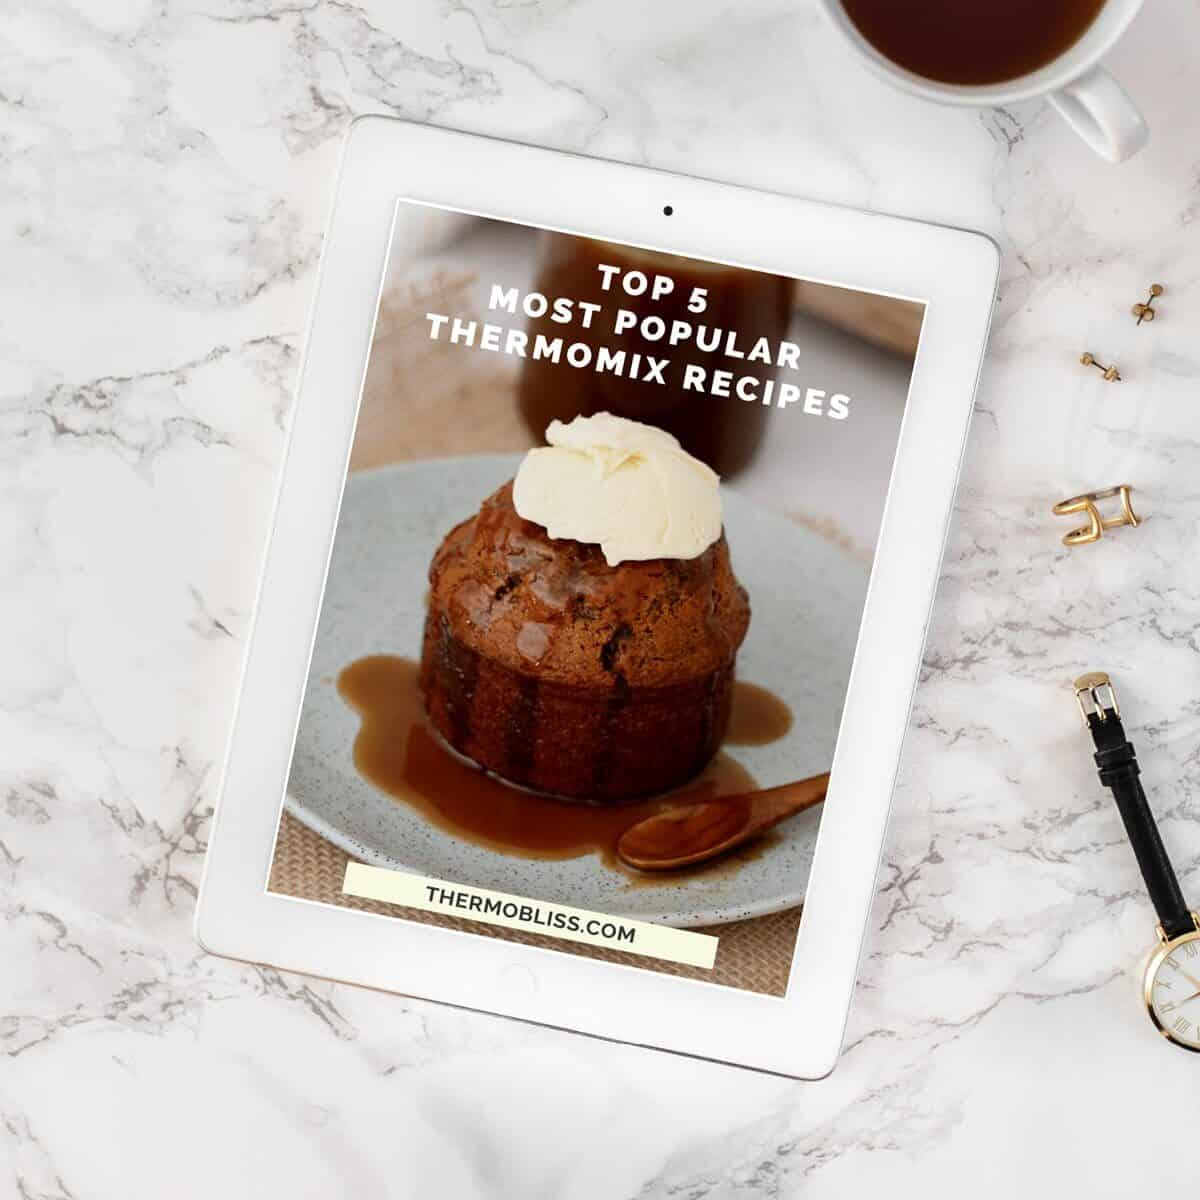 A recipe book cover - Top 5 Most Popular Thermomix Recipes